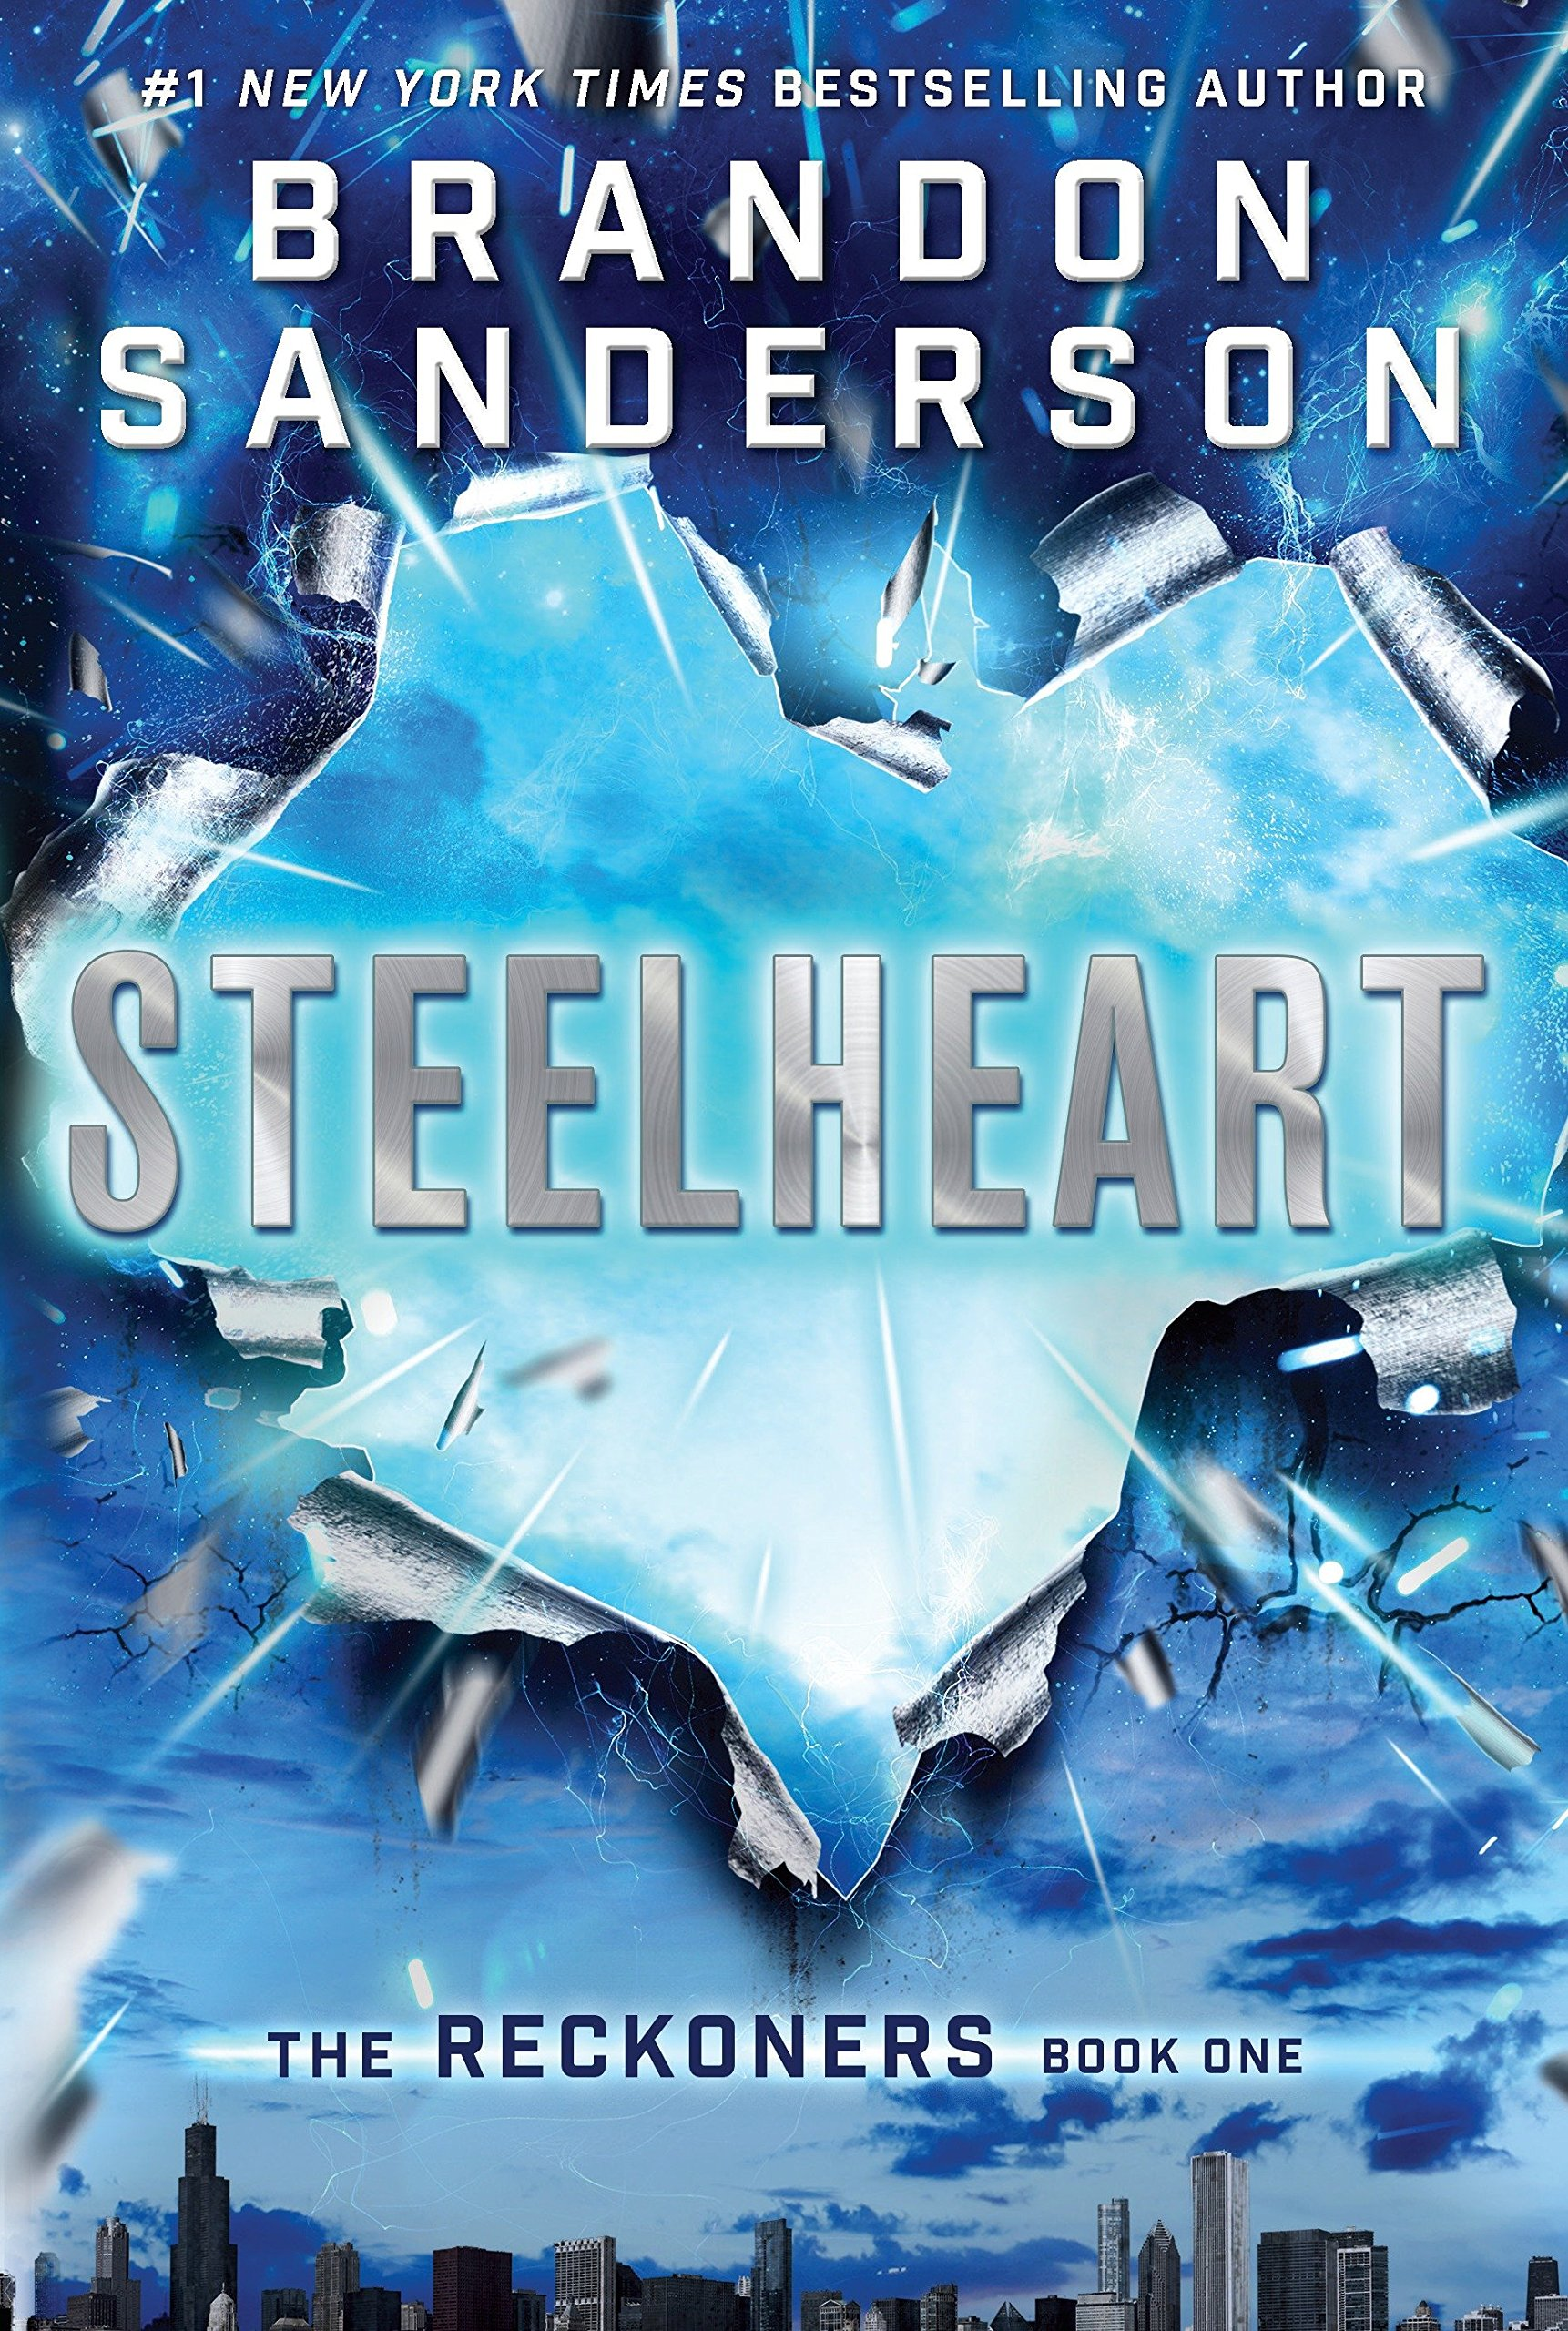 Image result for steelheart by brandon sanderson